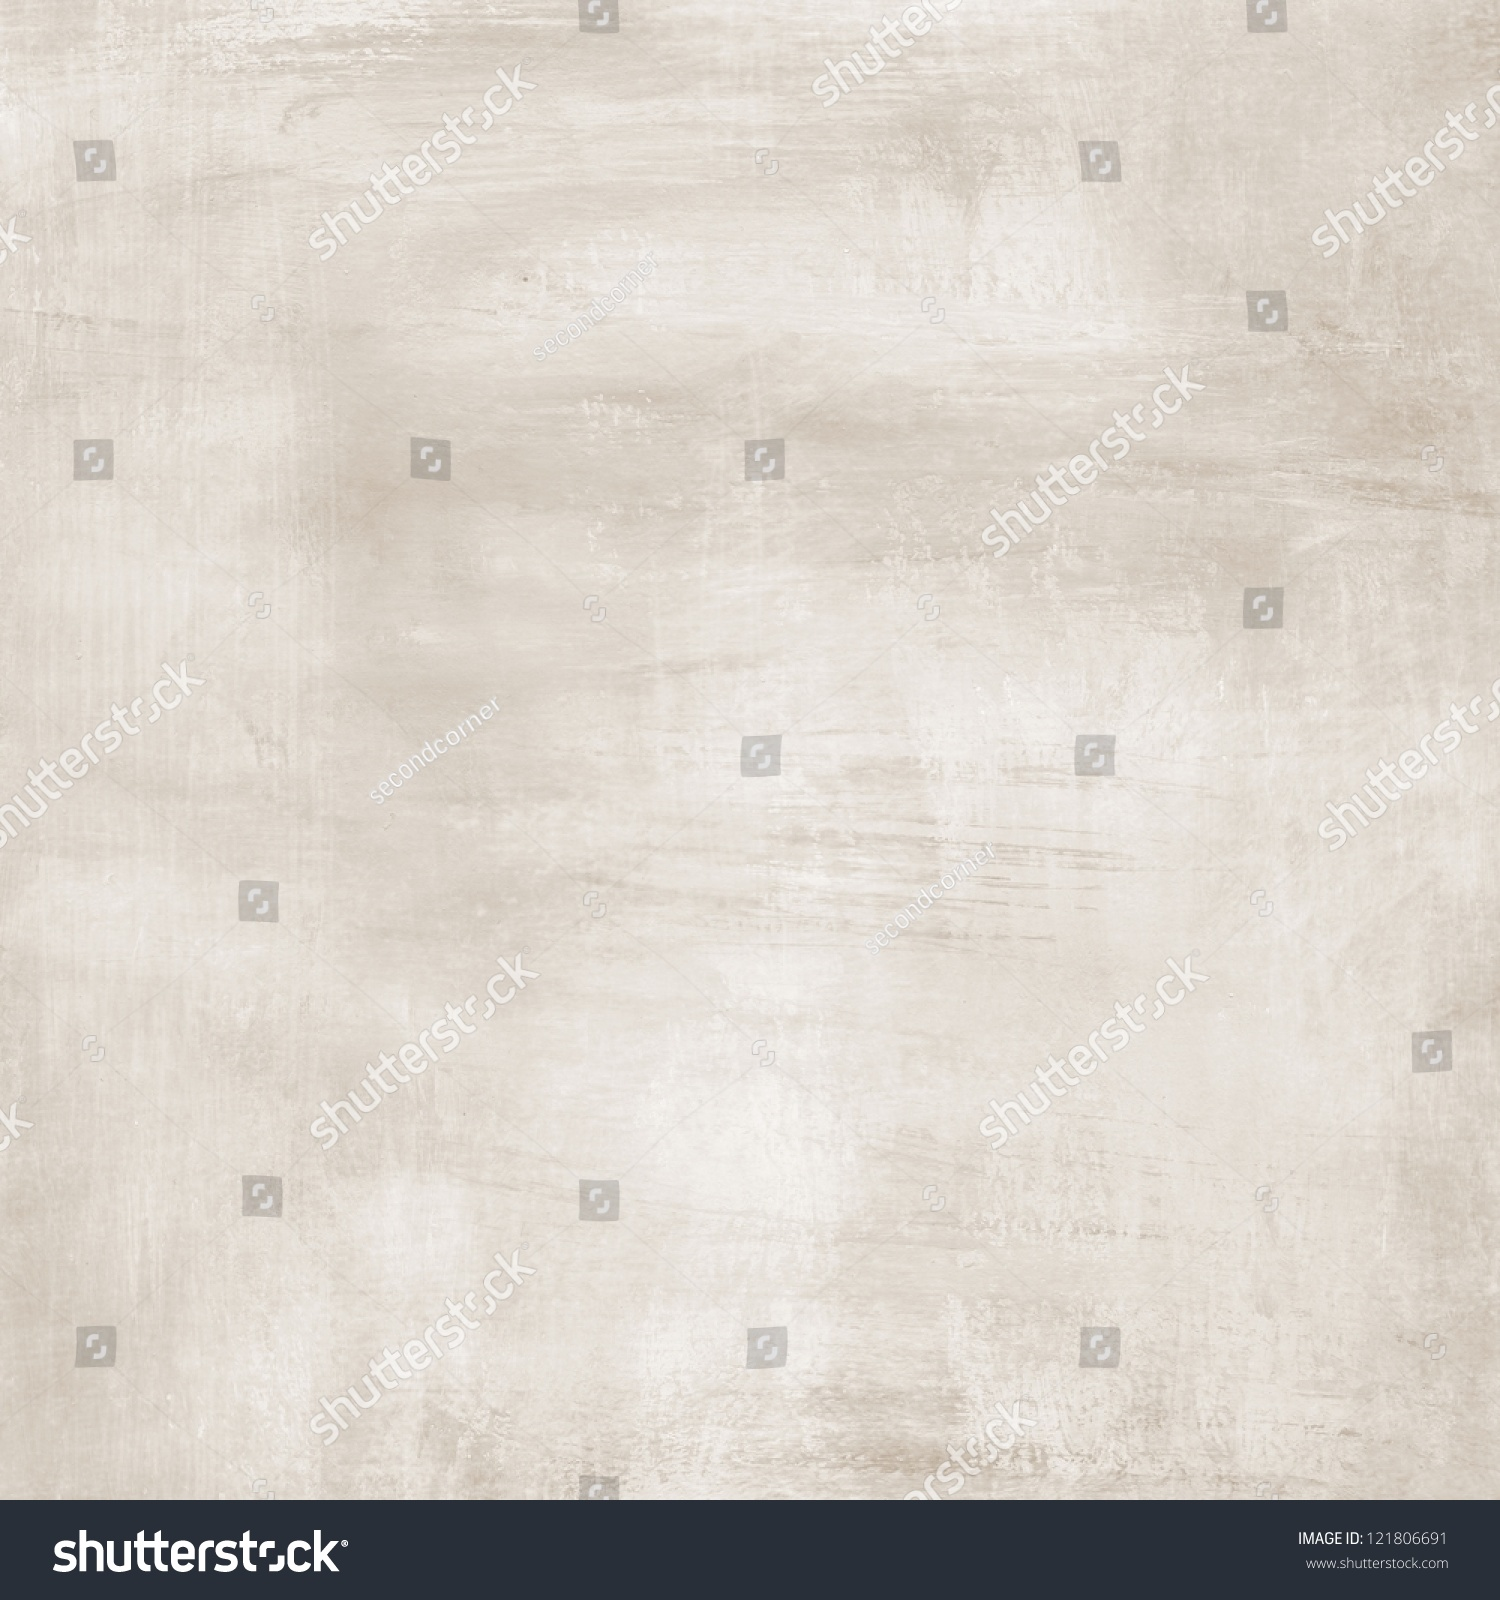 Light Grunge Background Texture Paper Stock Photo ...